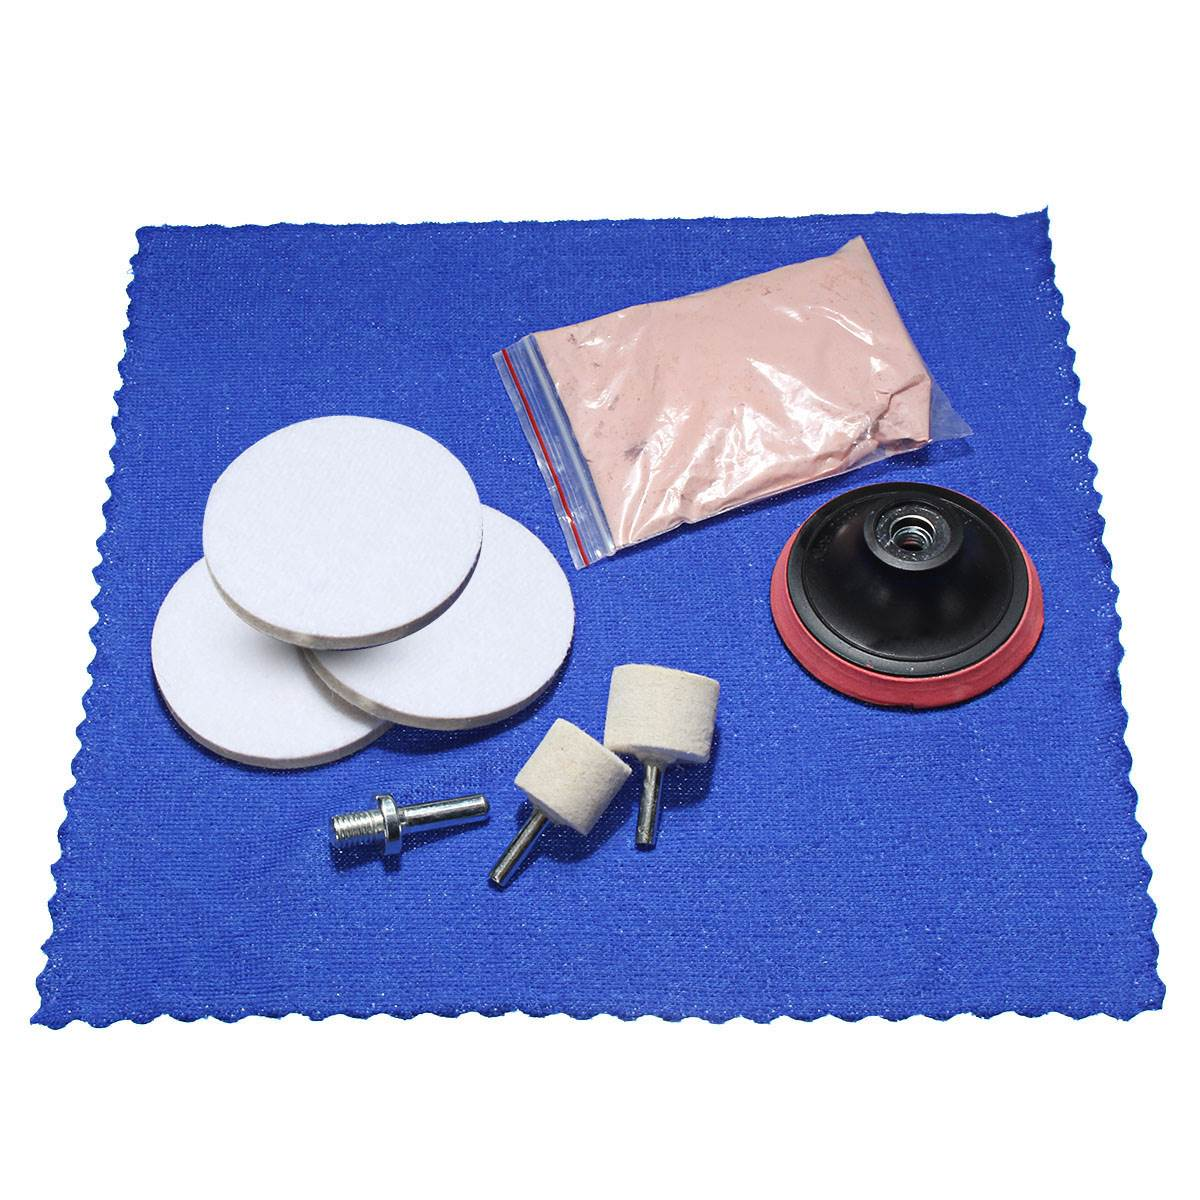 New Arrival 8Pcs Glass Cerium Oxide Powder + 3 Wheel + Felt Scrach Remover Polishing Kit ...